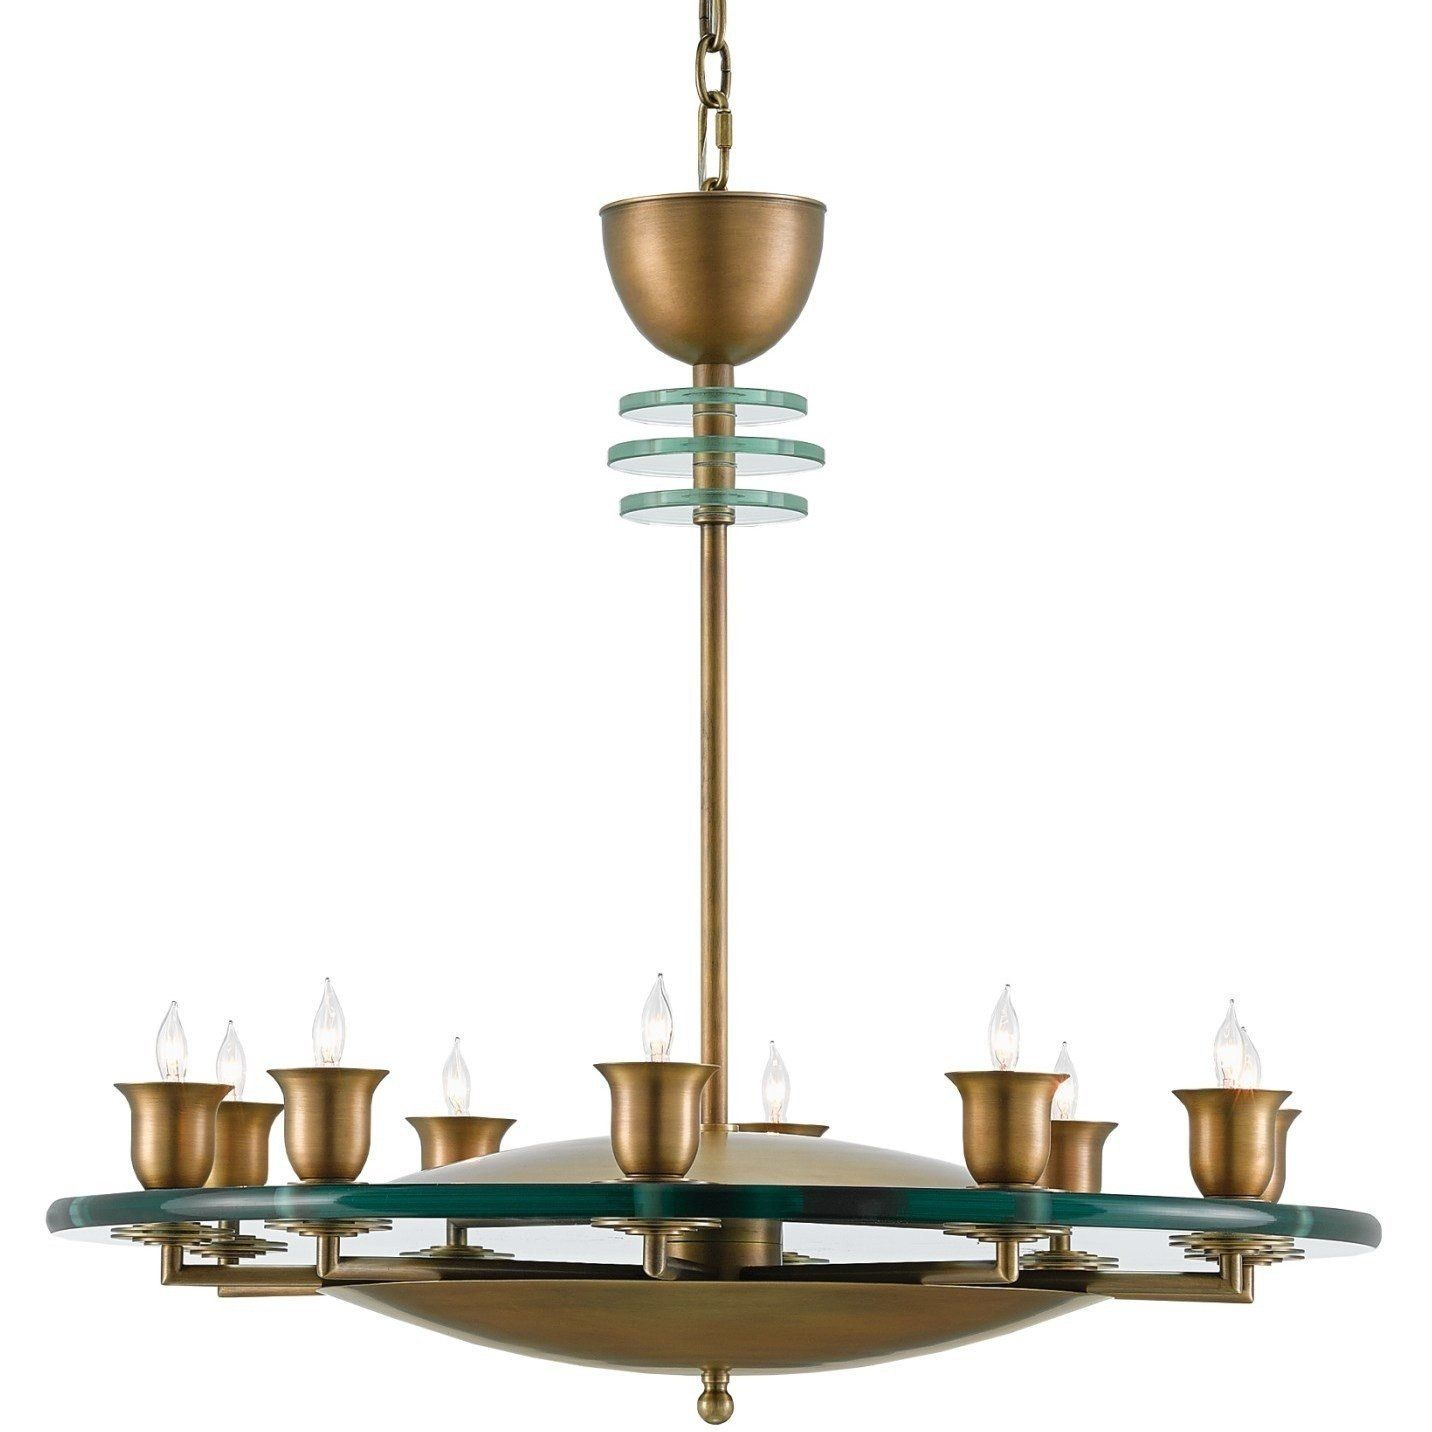 Currey and Company Bainbridge Chandelier 9000-0180 - LOVECUP